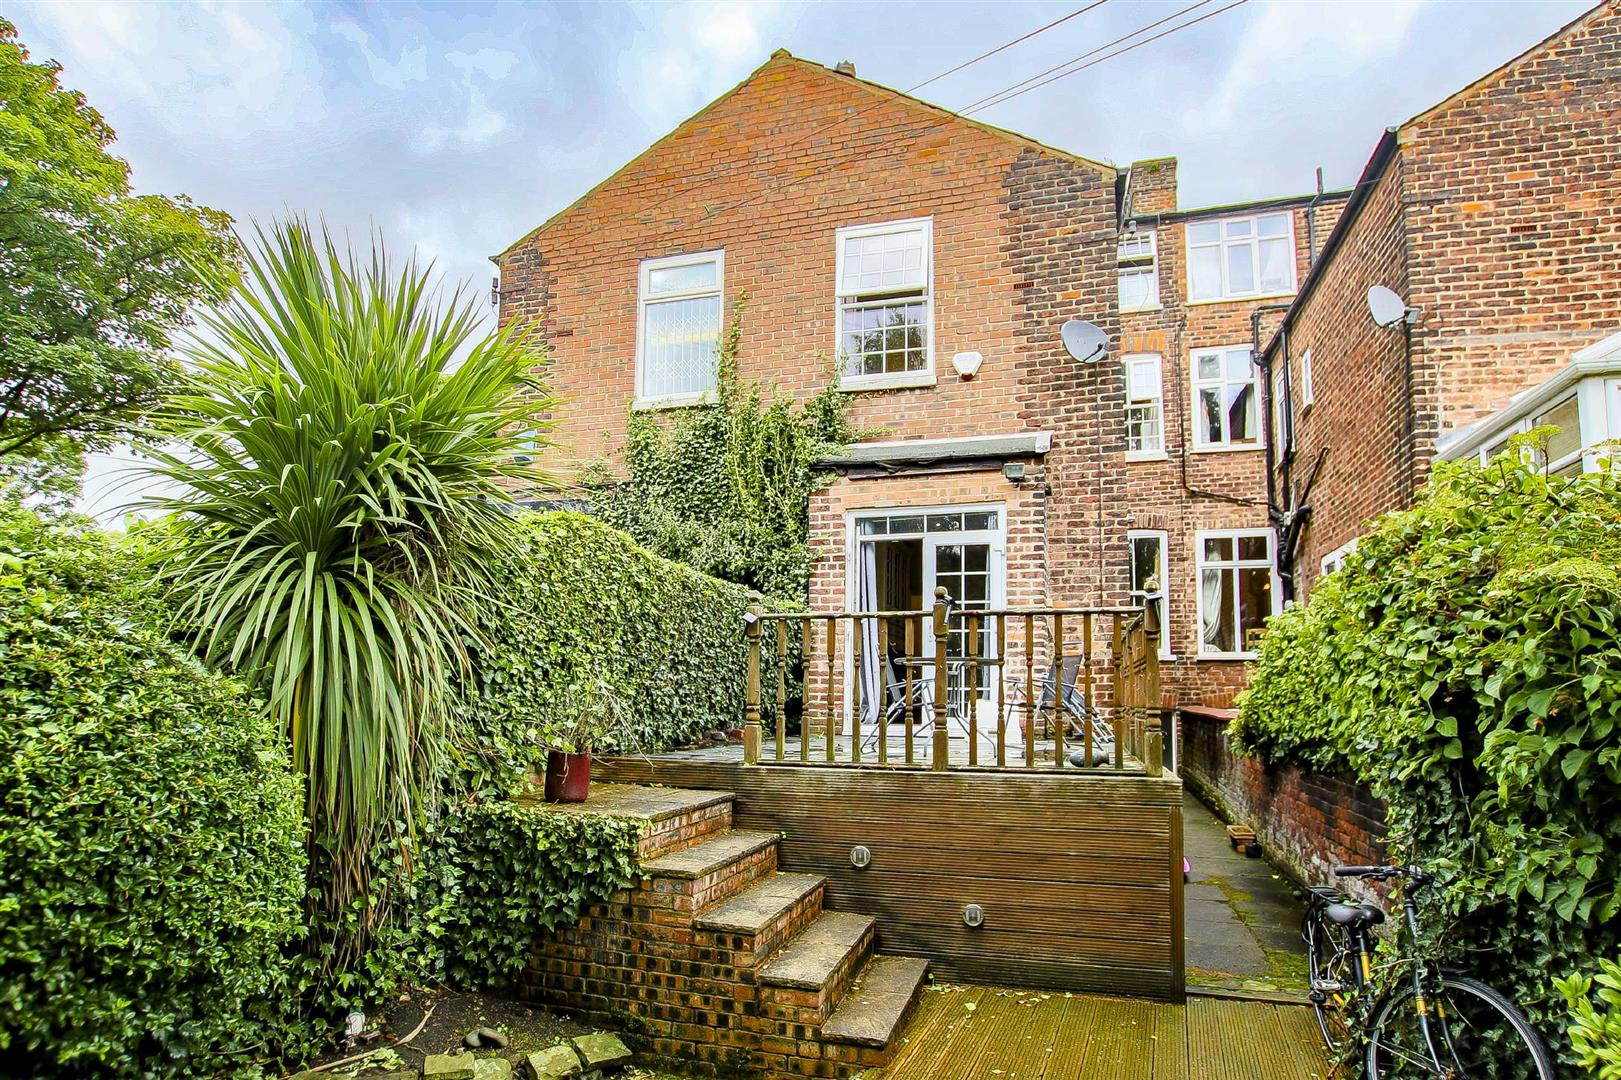 5 Bedroom Terraced House For Sale - Image 10